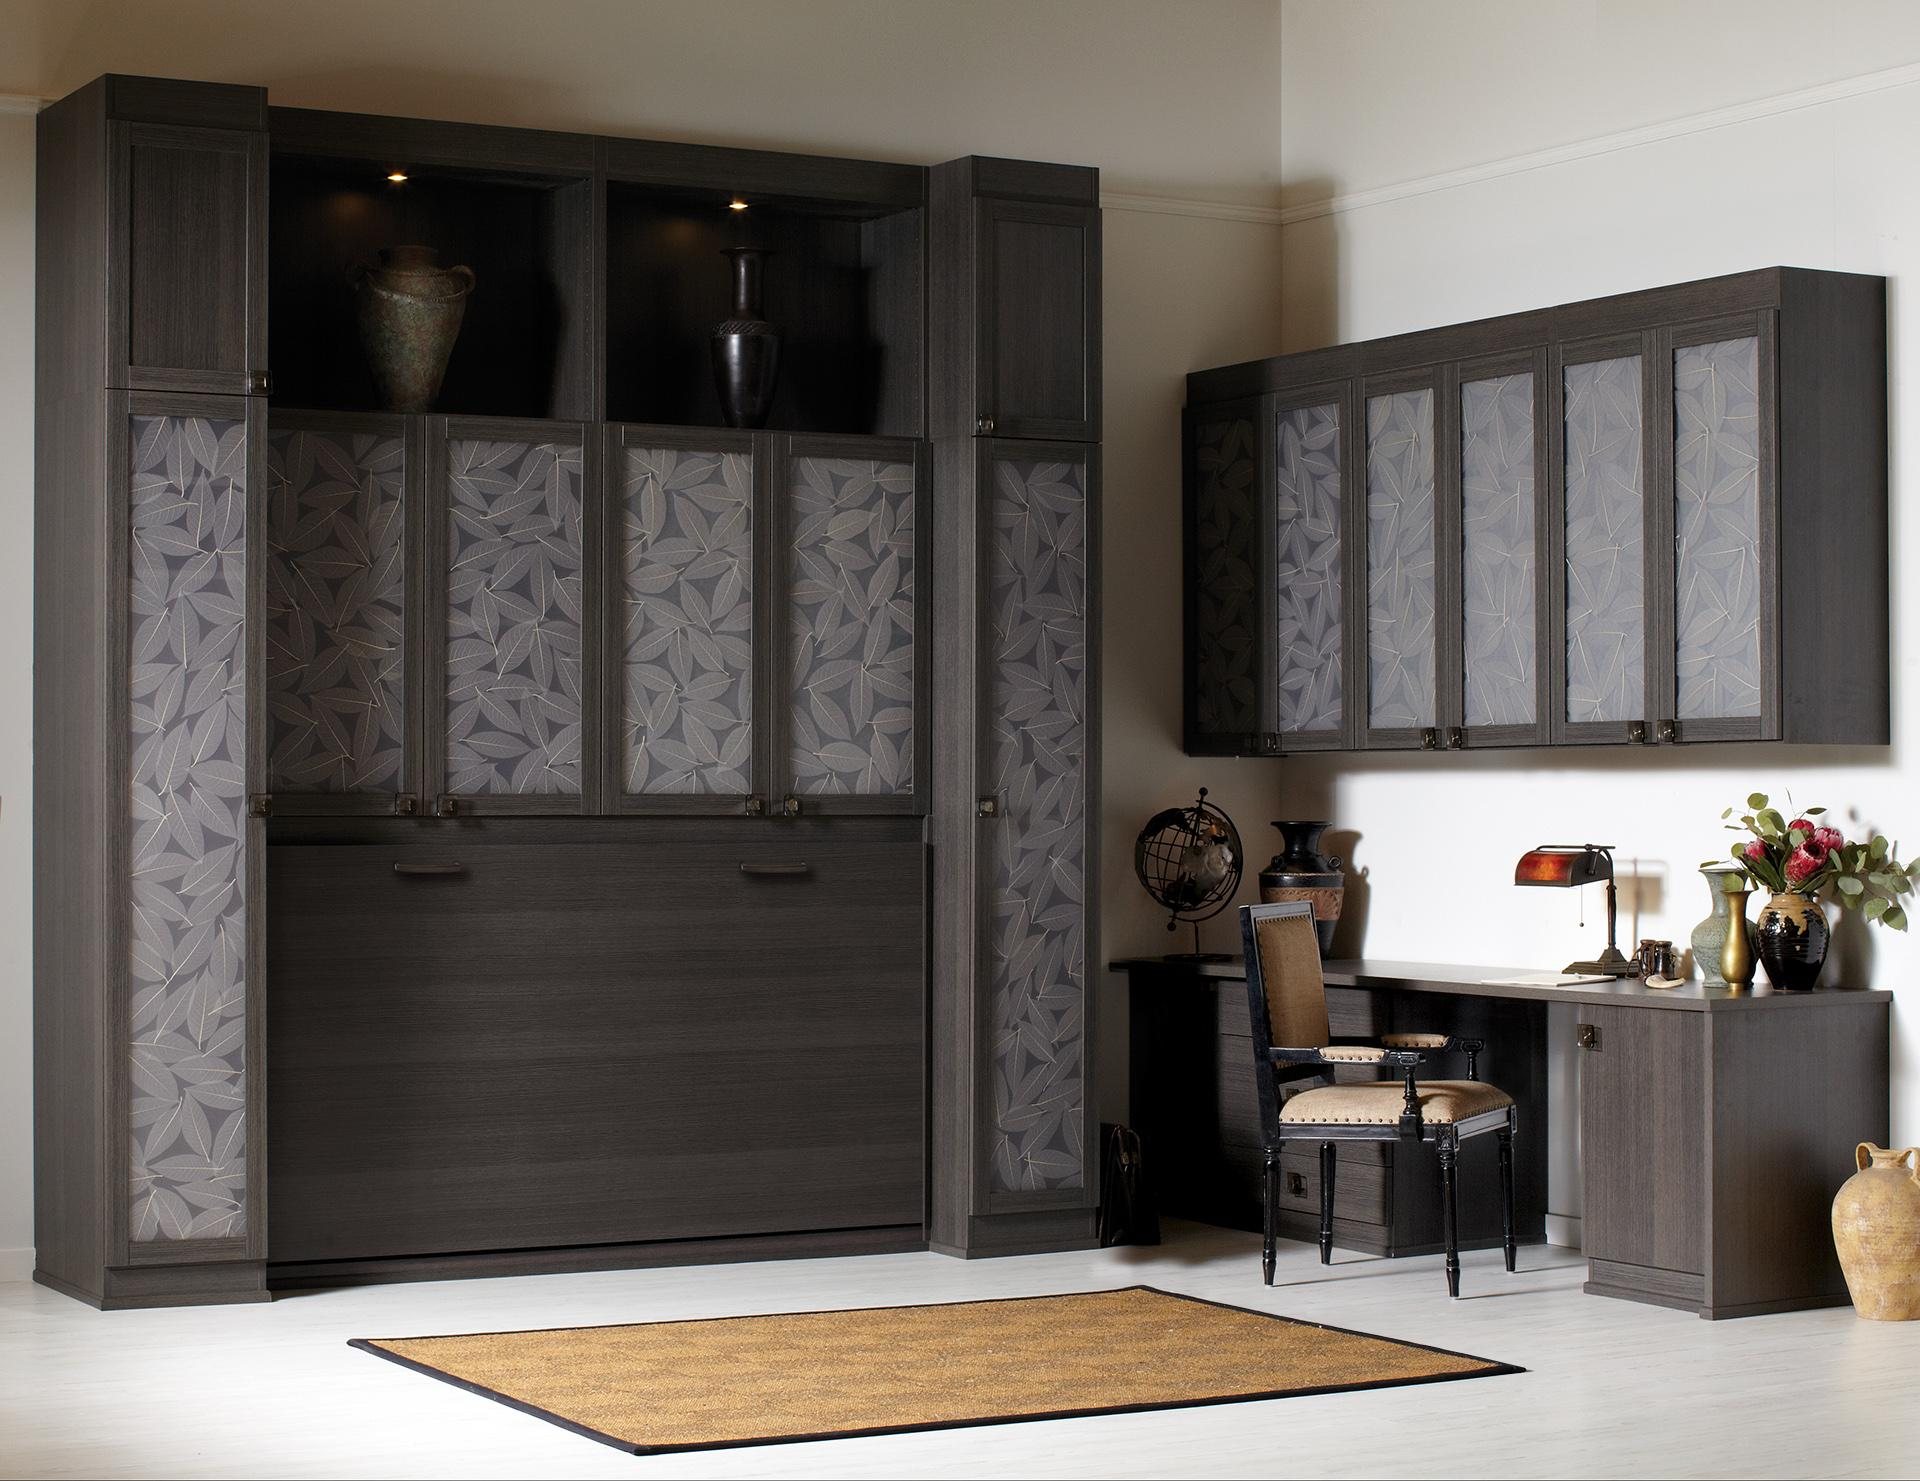 Murphy Beds Wall Bed Designs & Ideas by California Closets